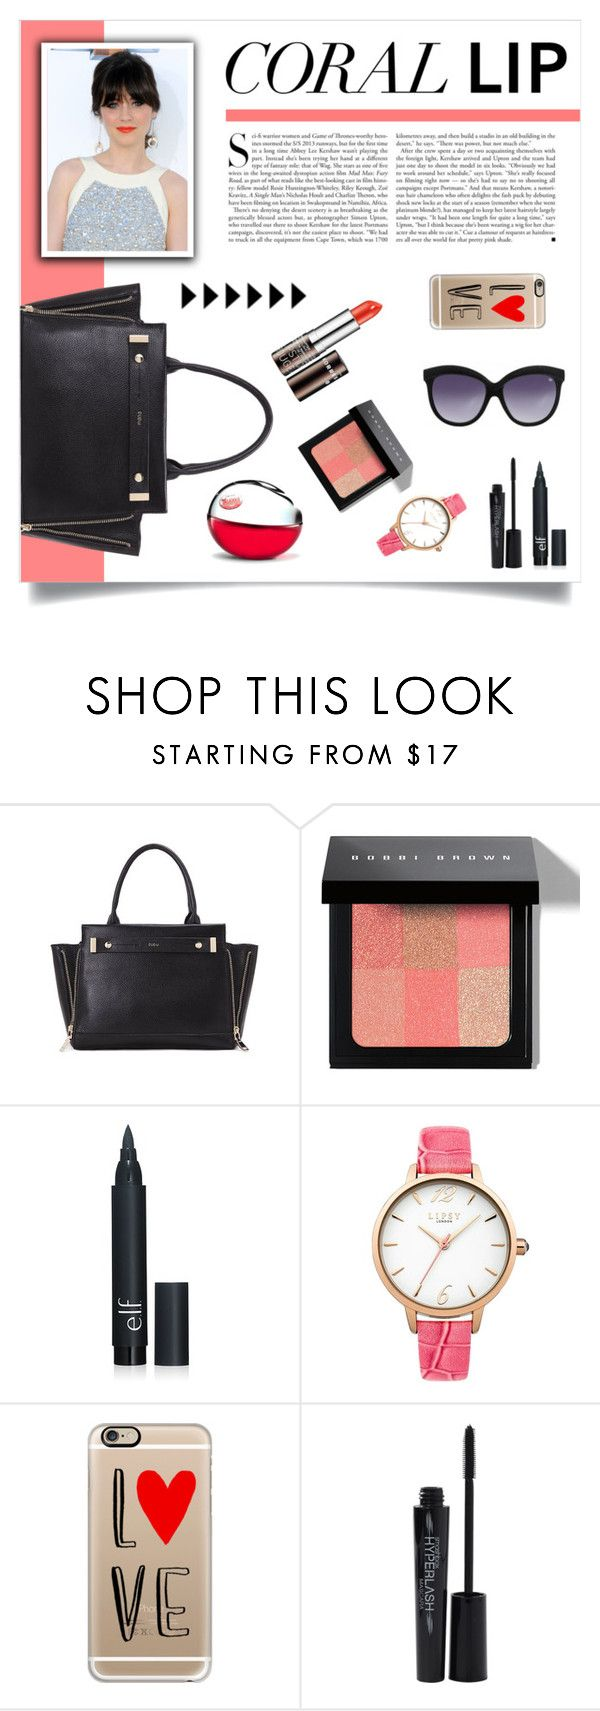 """Coral lip"" by dudubags ❤ liked on Polyvore featuring beauty, Kershaw, Bobbi Brown Cosmetics, DKNY, Lipsy, Casetify and Smashbox"